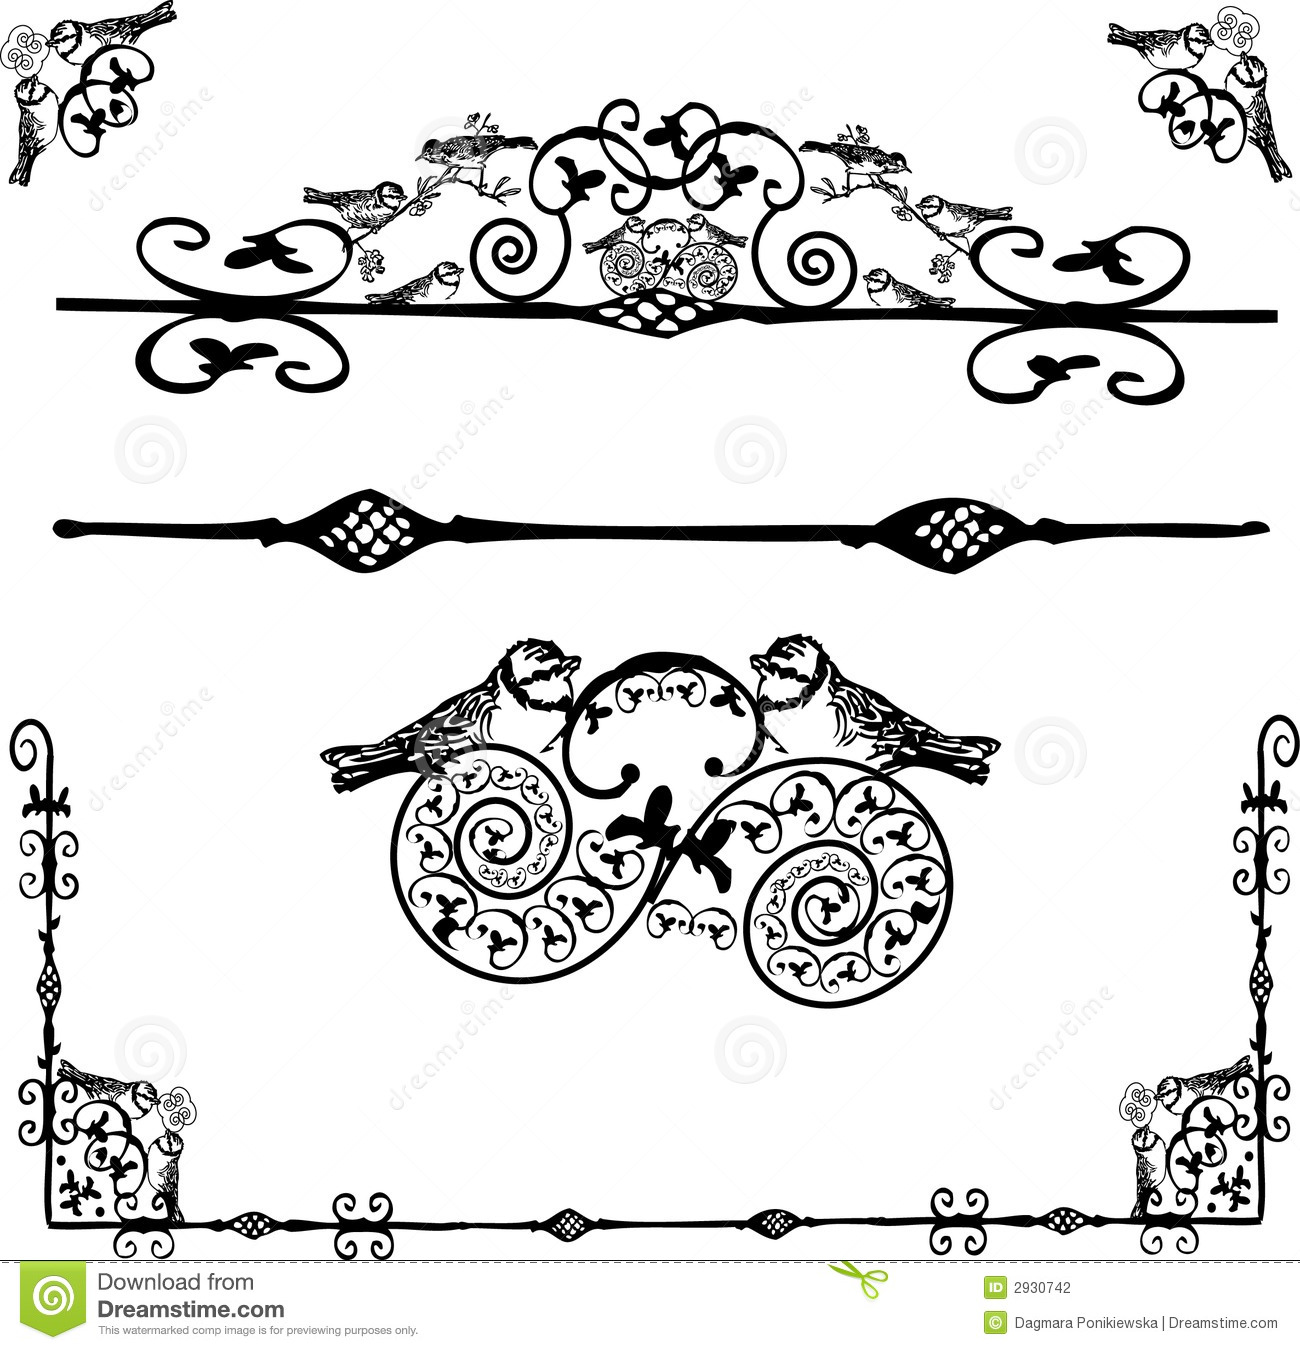 Stock Photography Floral Ornament Vector Image2930742 on Lines Symmetry 2